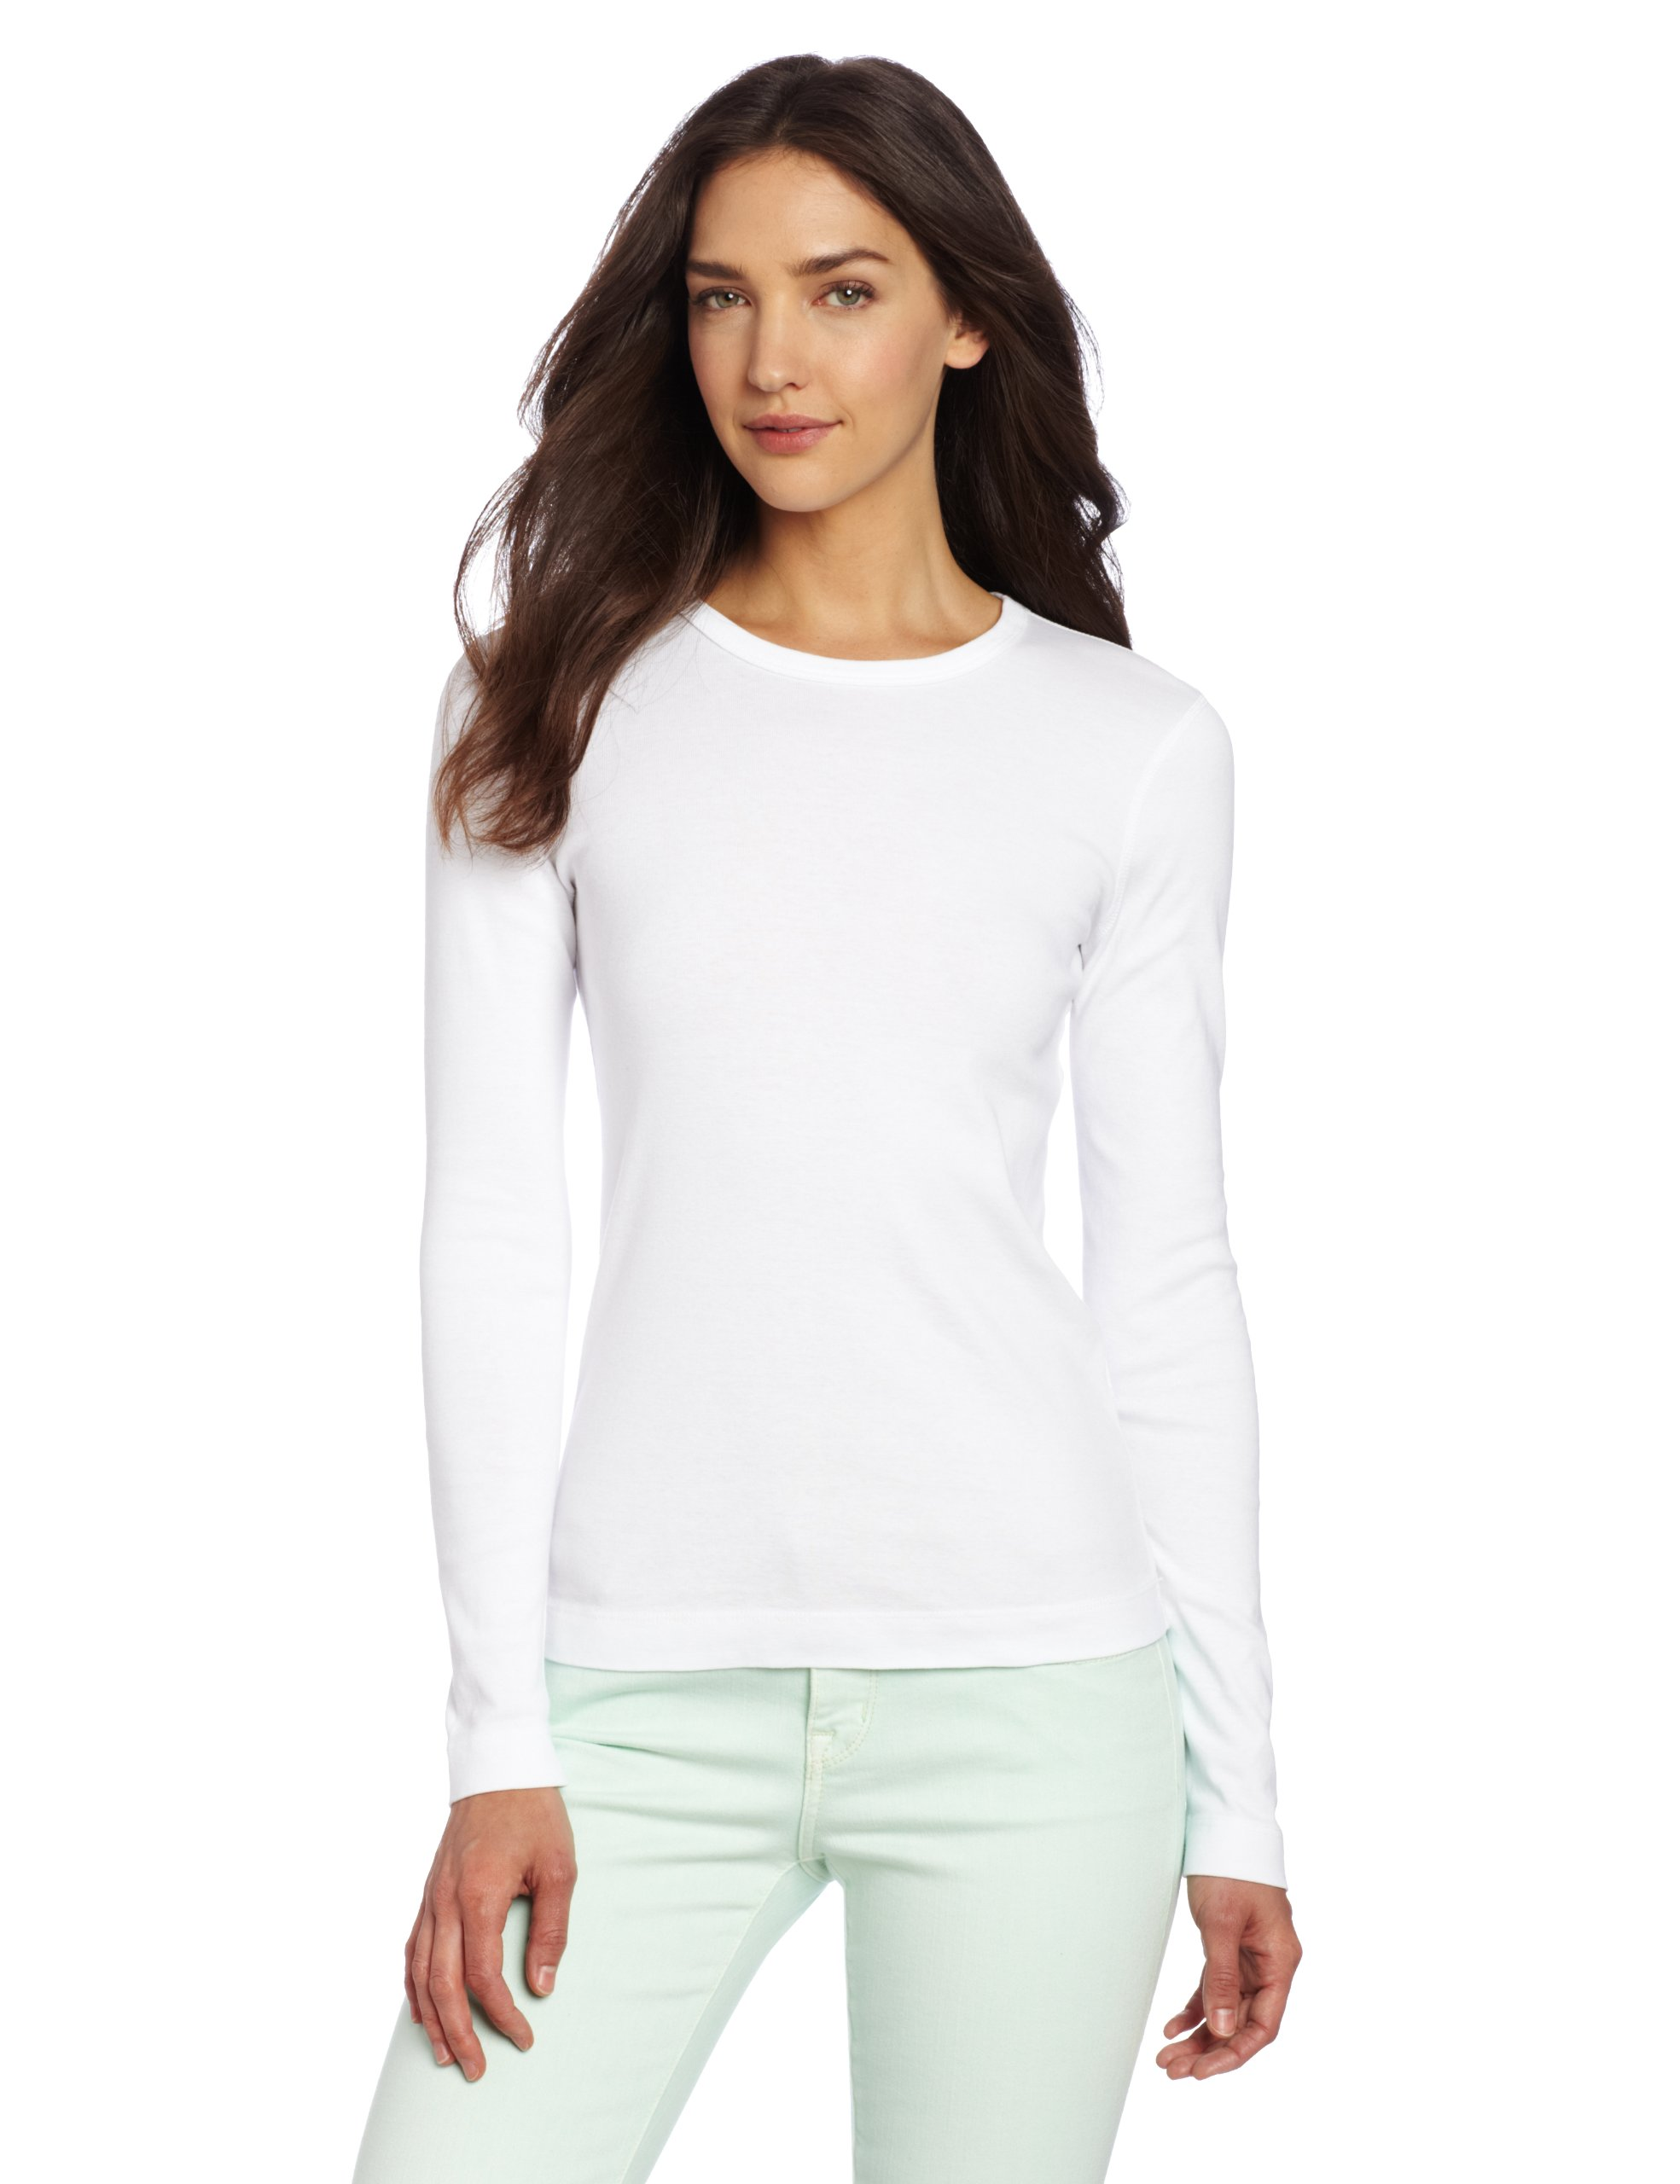 Three Dots Women's Long Sleeve Crewneck Tee,White,X-Large